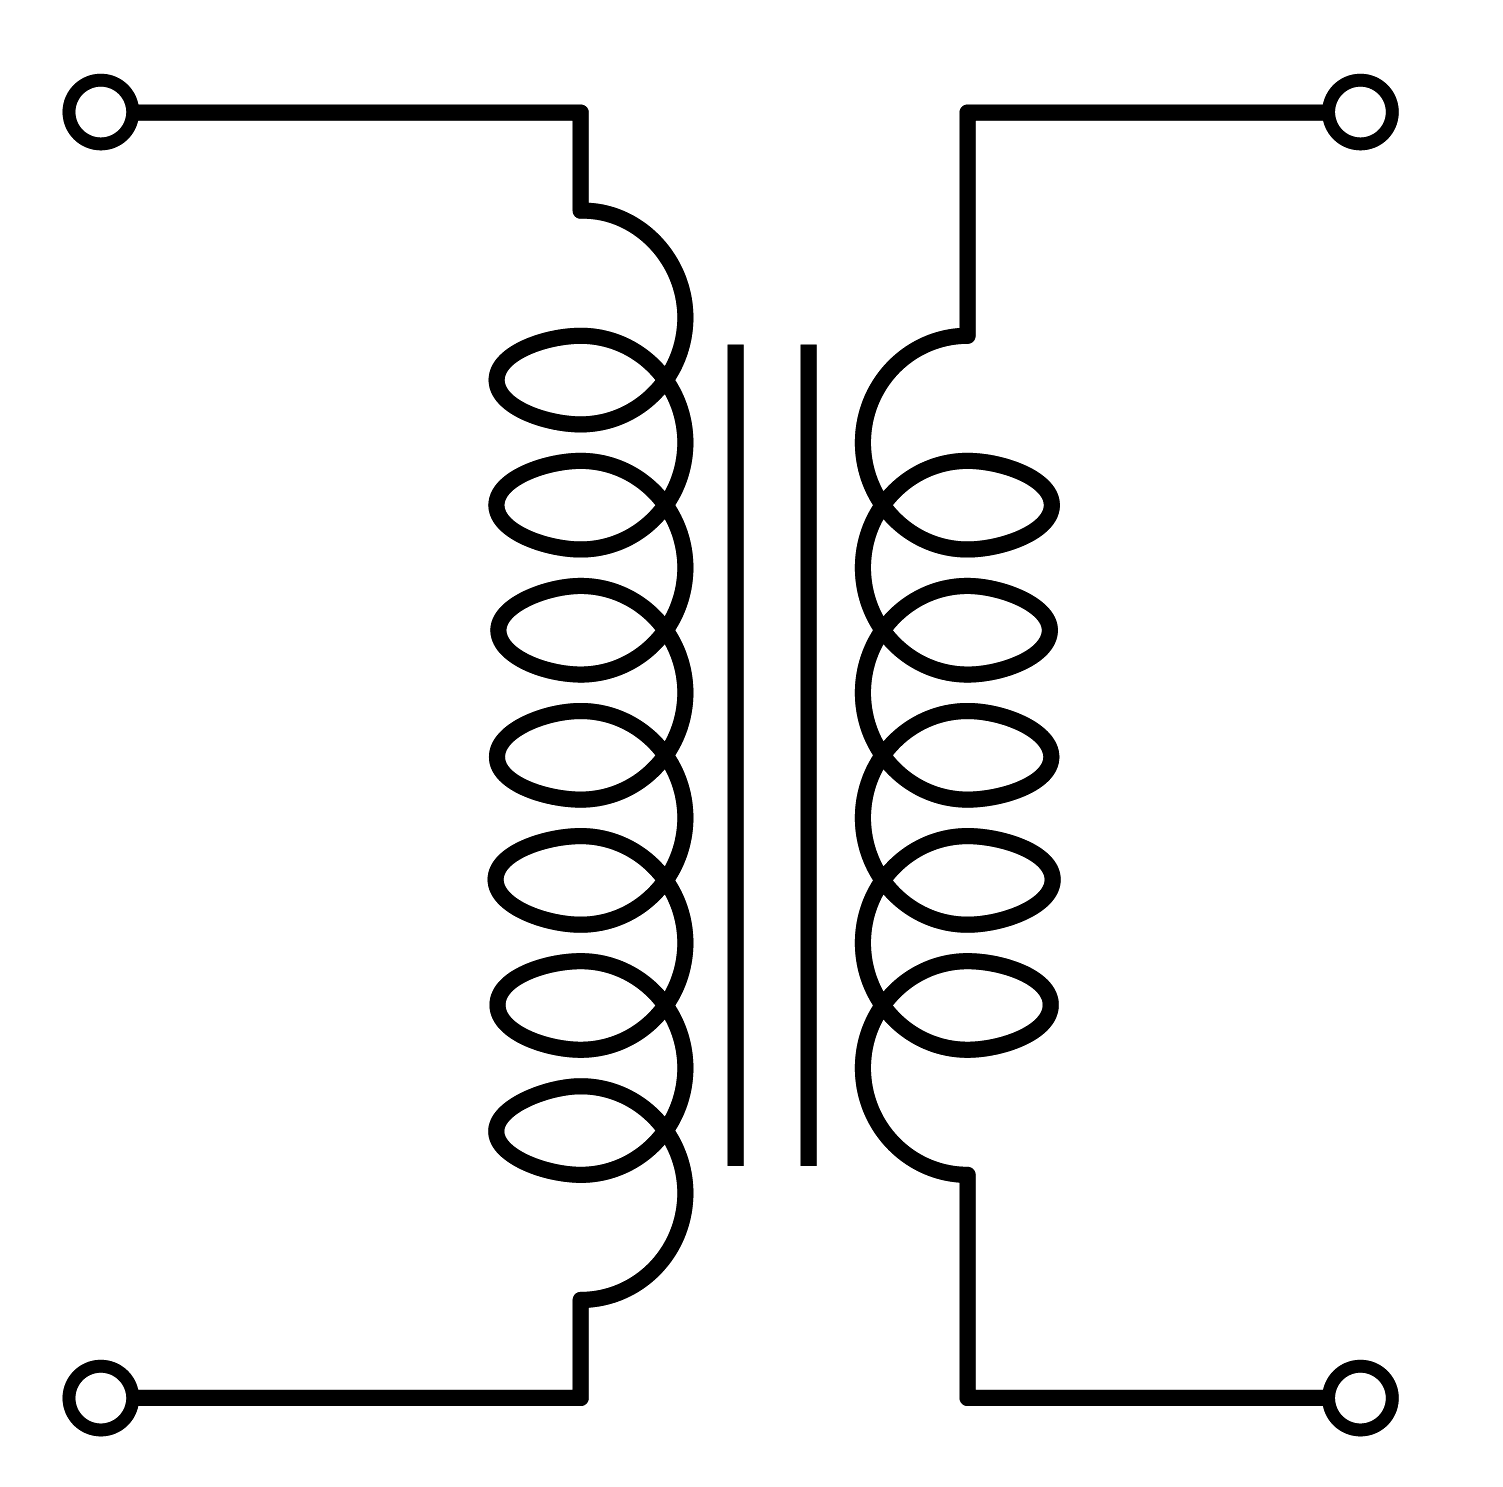 electrical symbol of relays